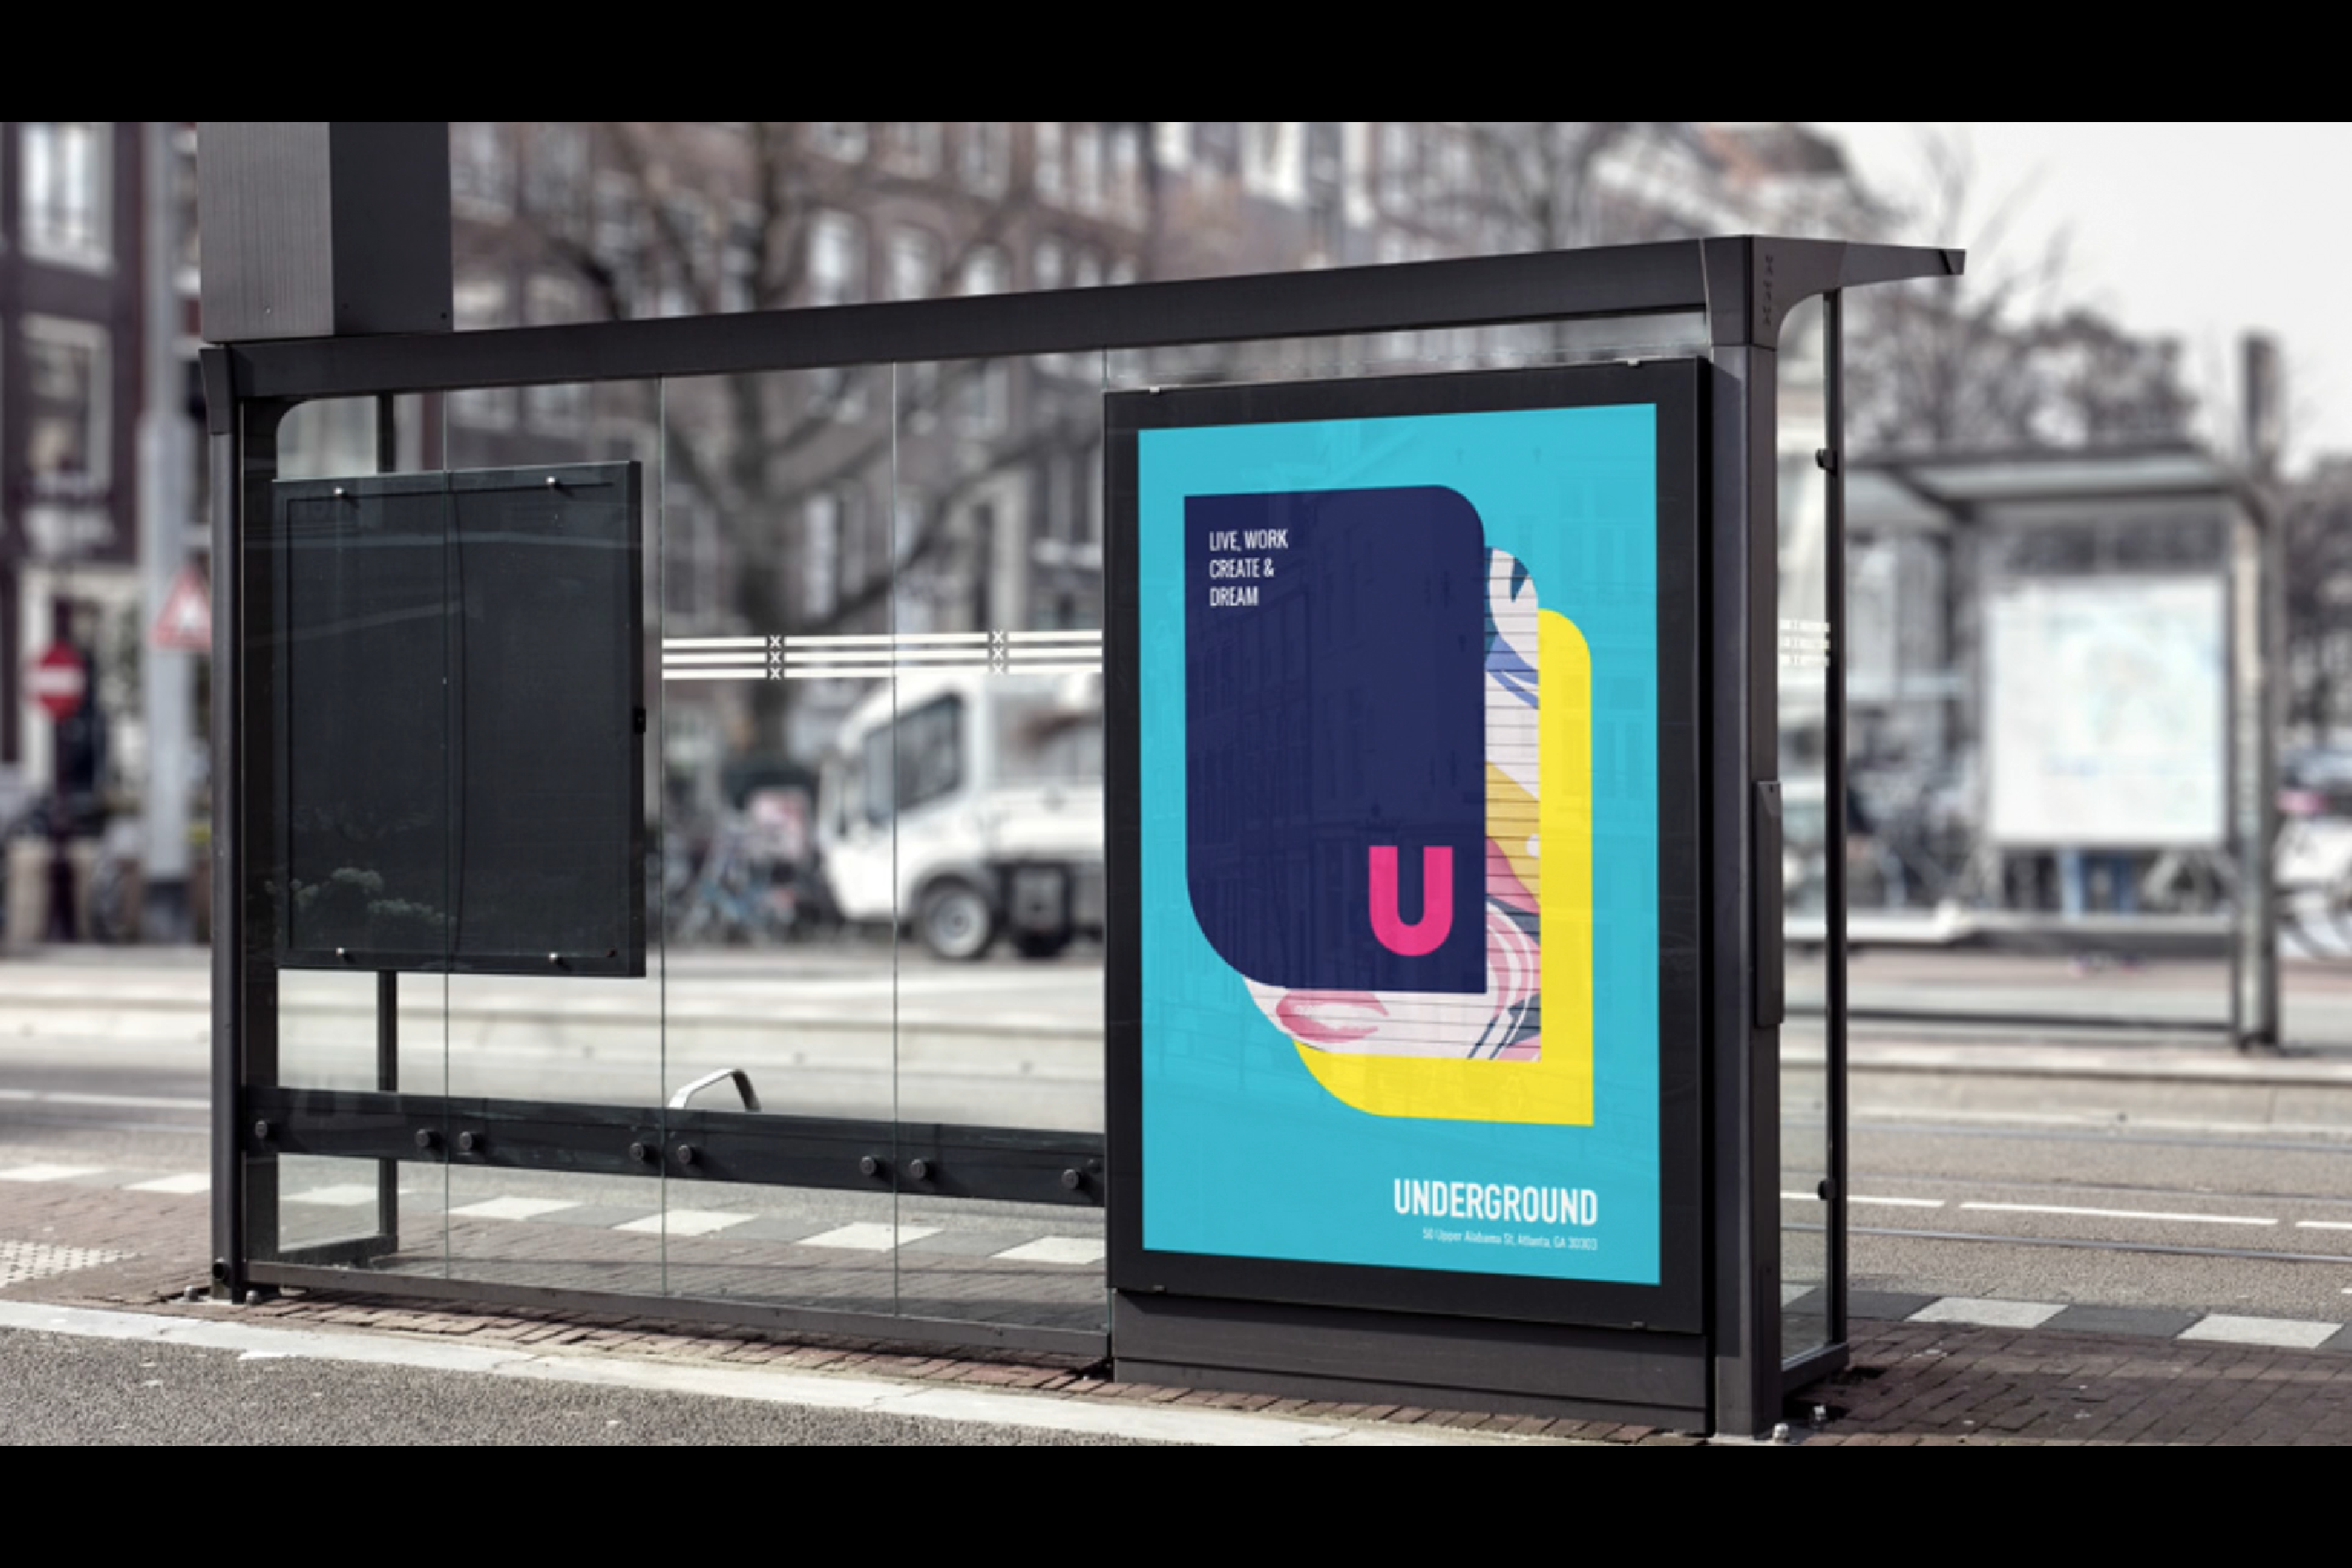 A photo of an Underground ad at a bus station